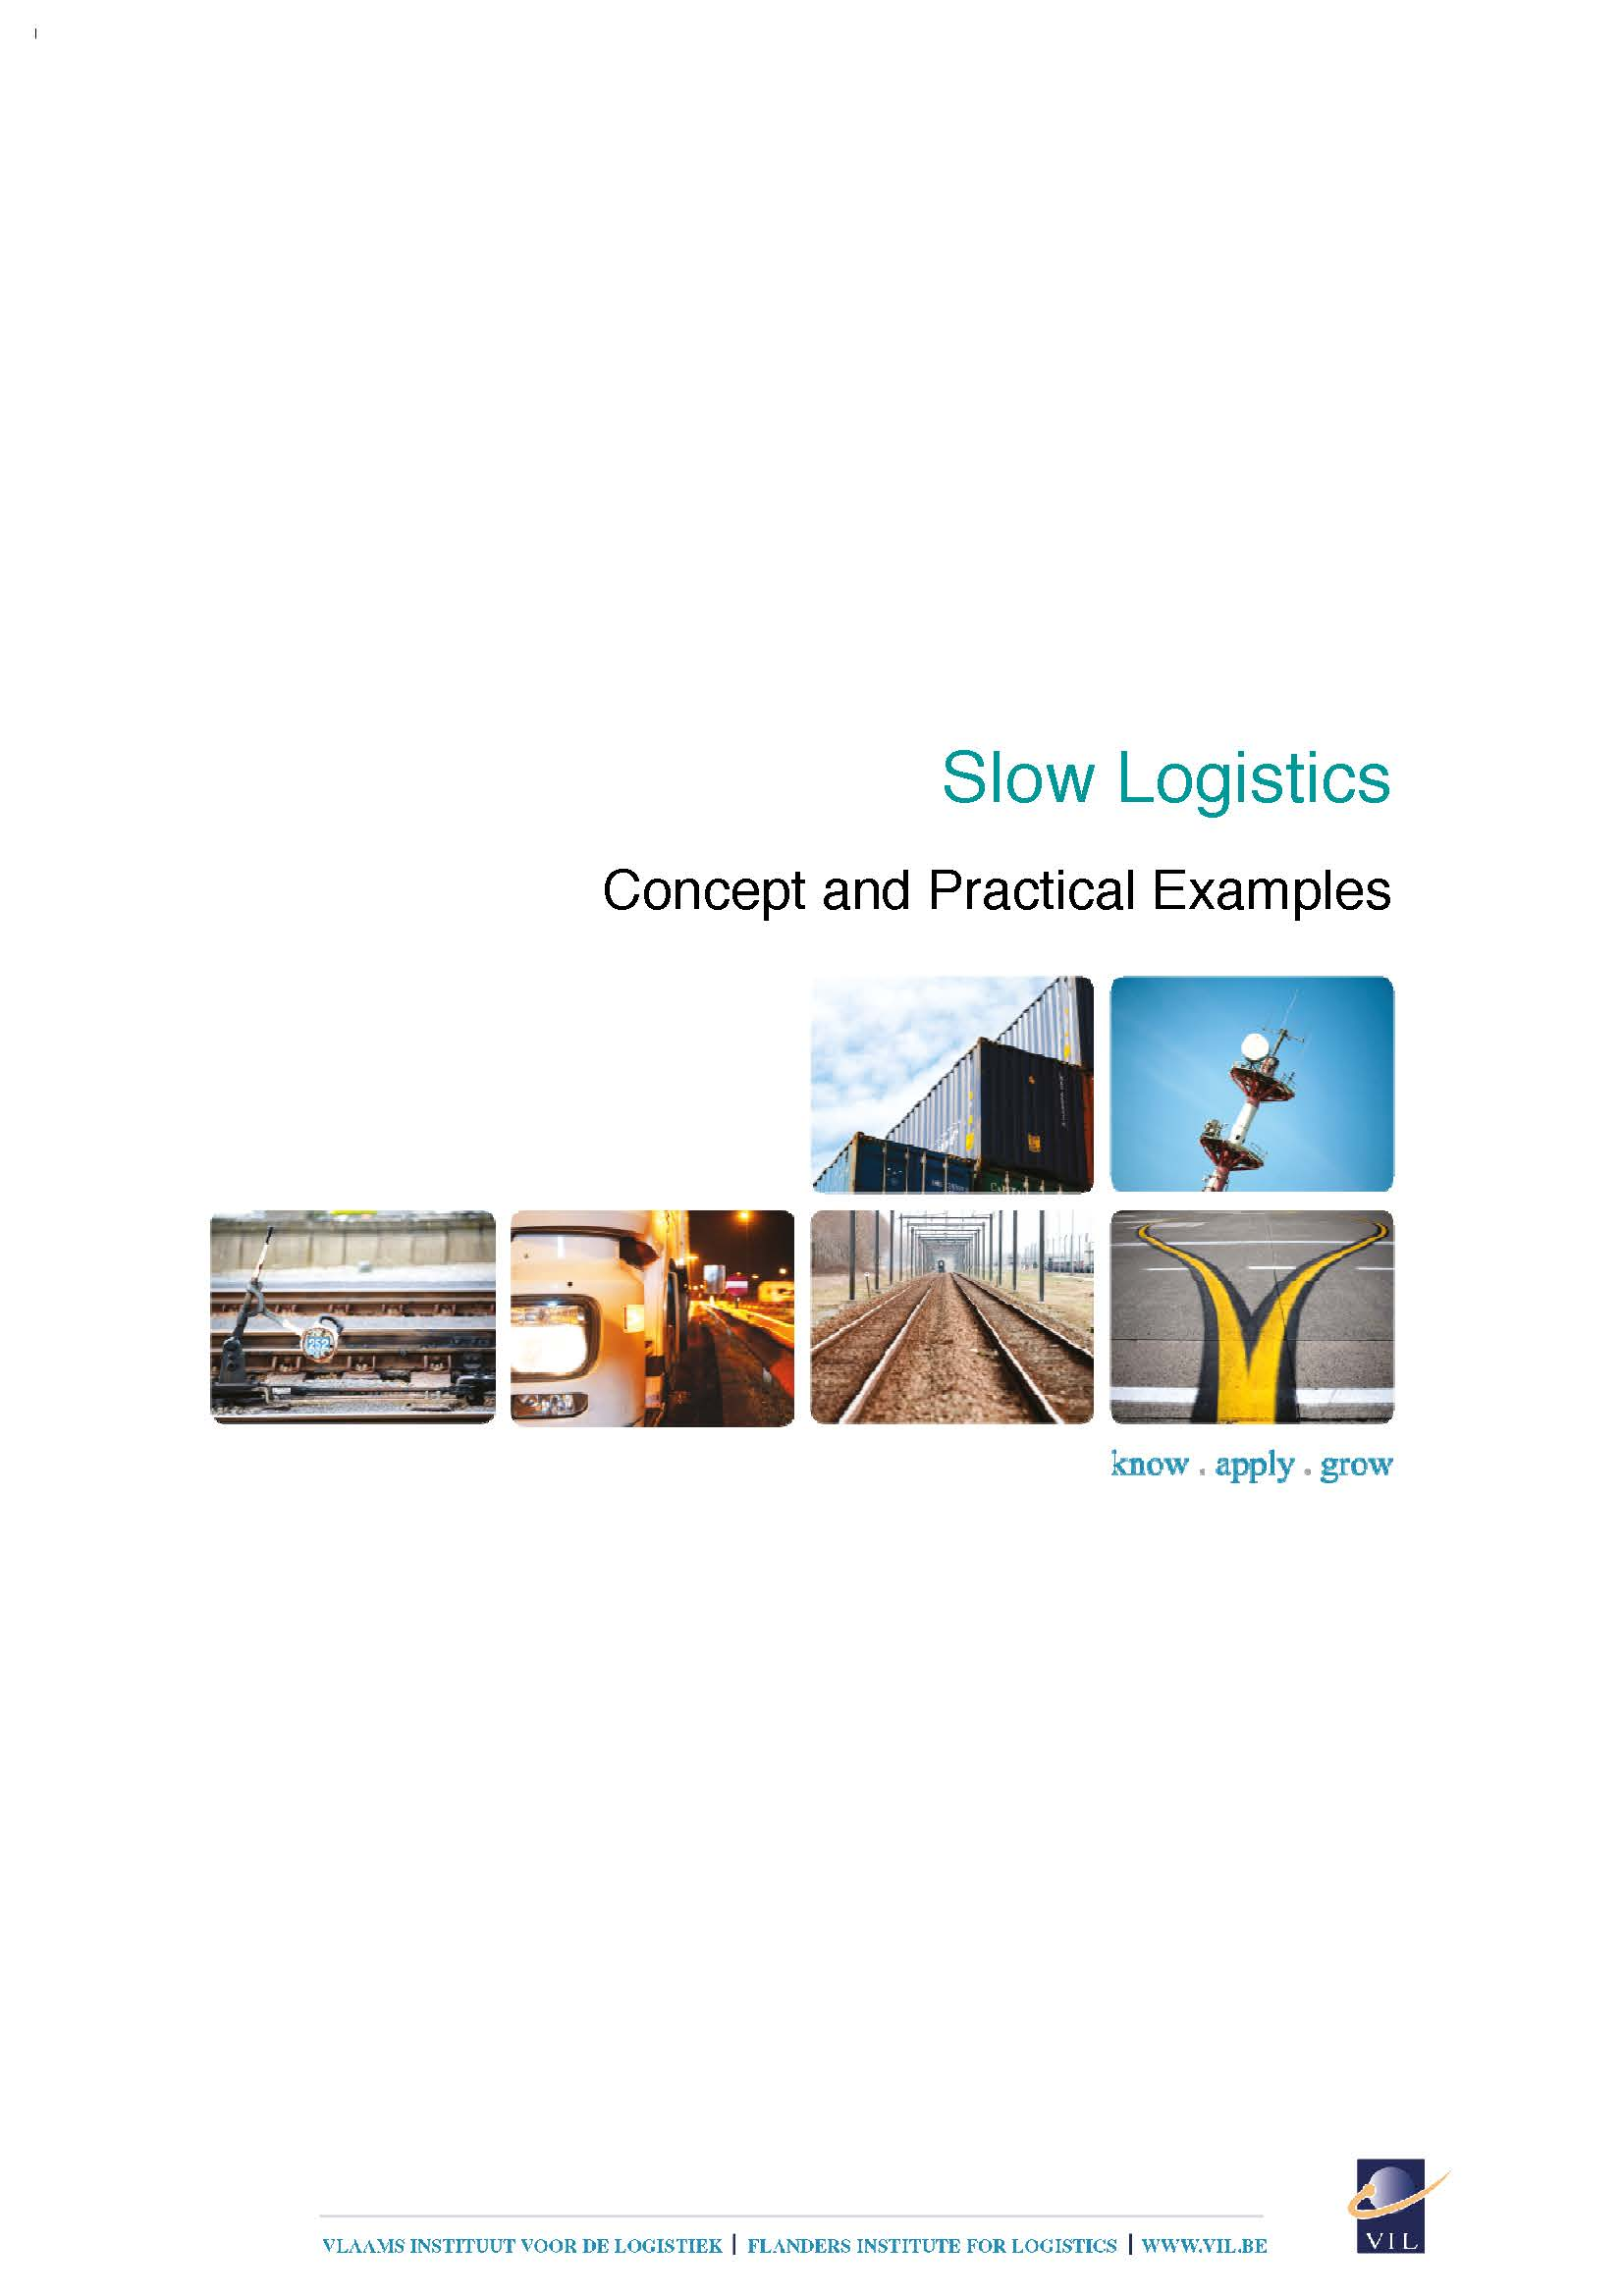 slow logistics concept and practical examples vil